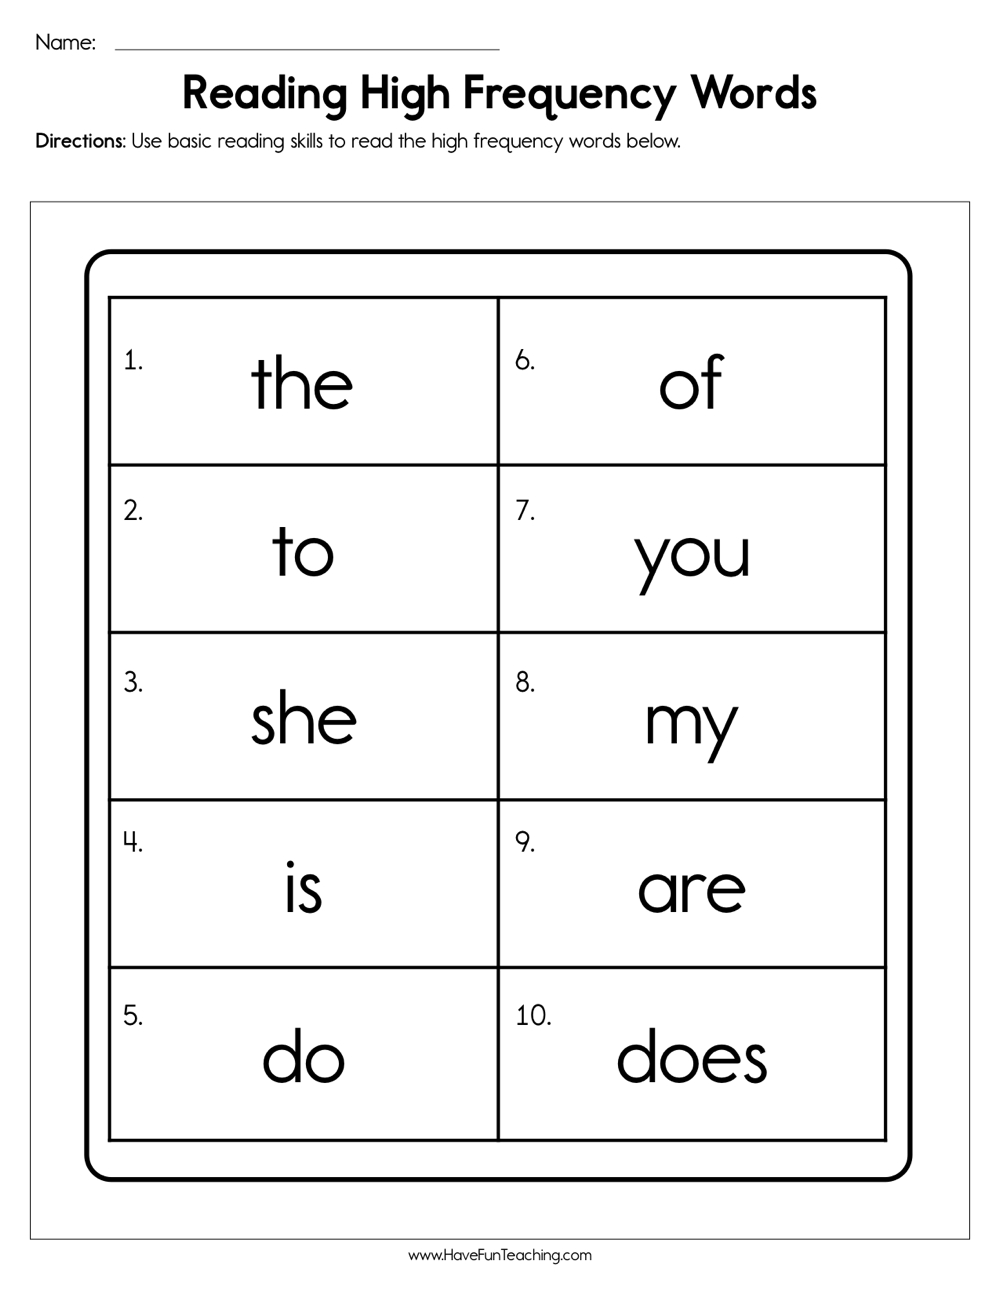 Reading High Frequency Words Worksheet